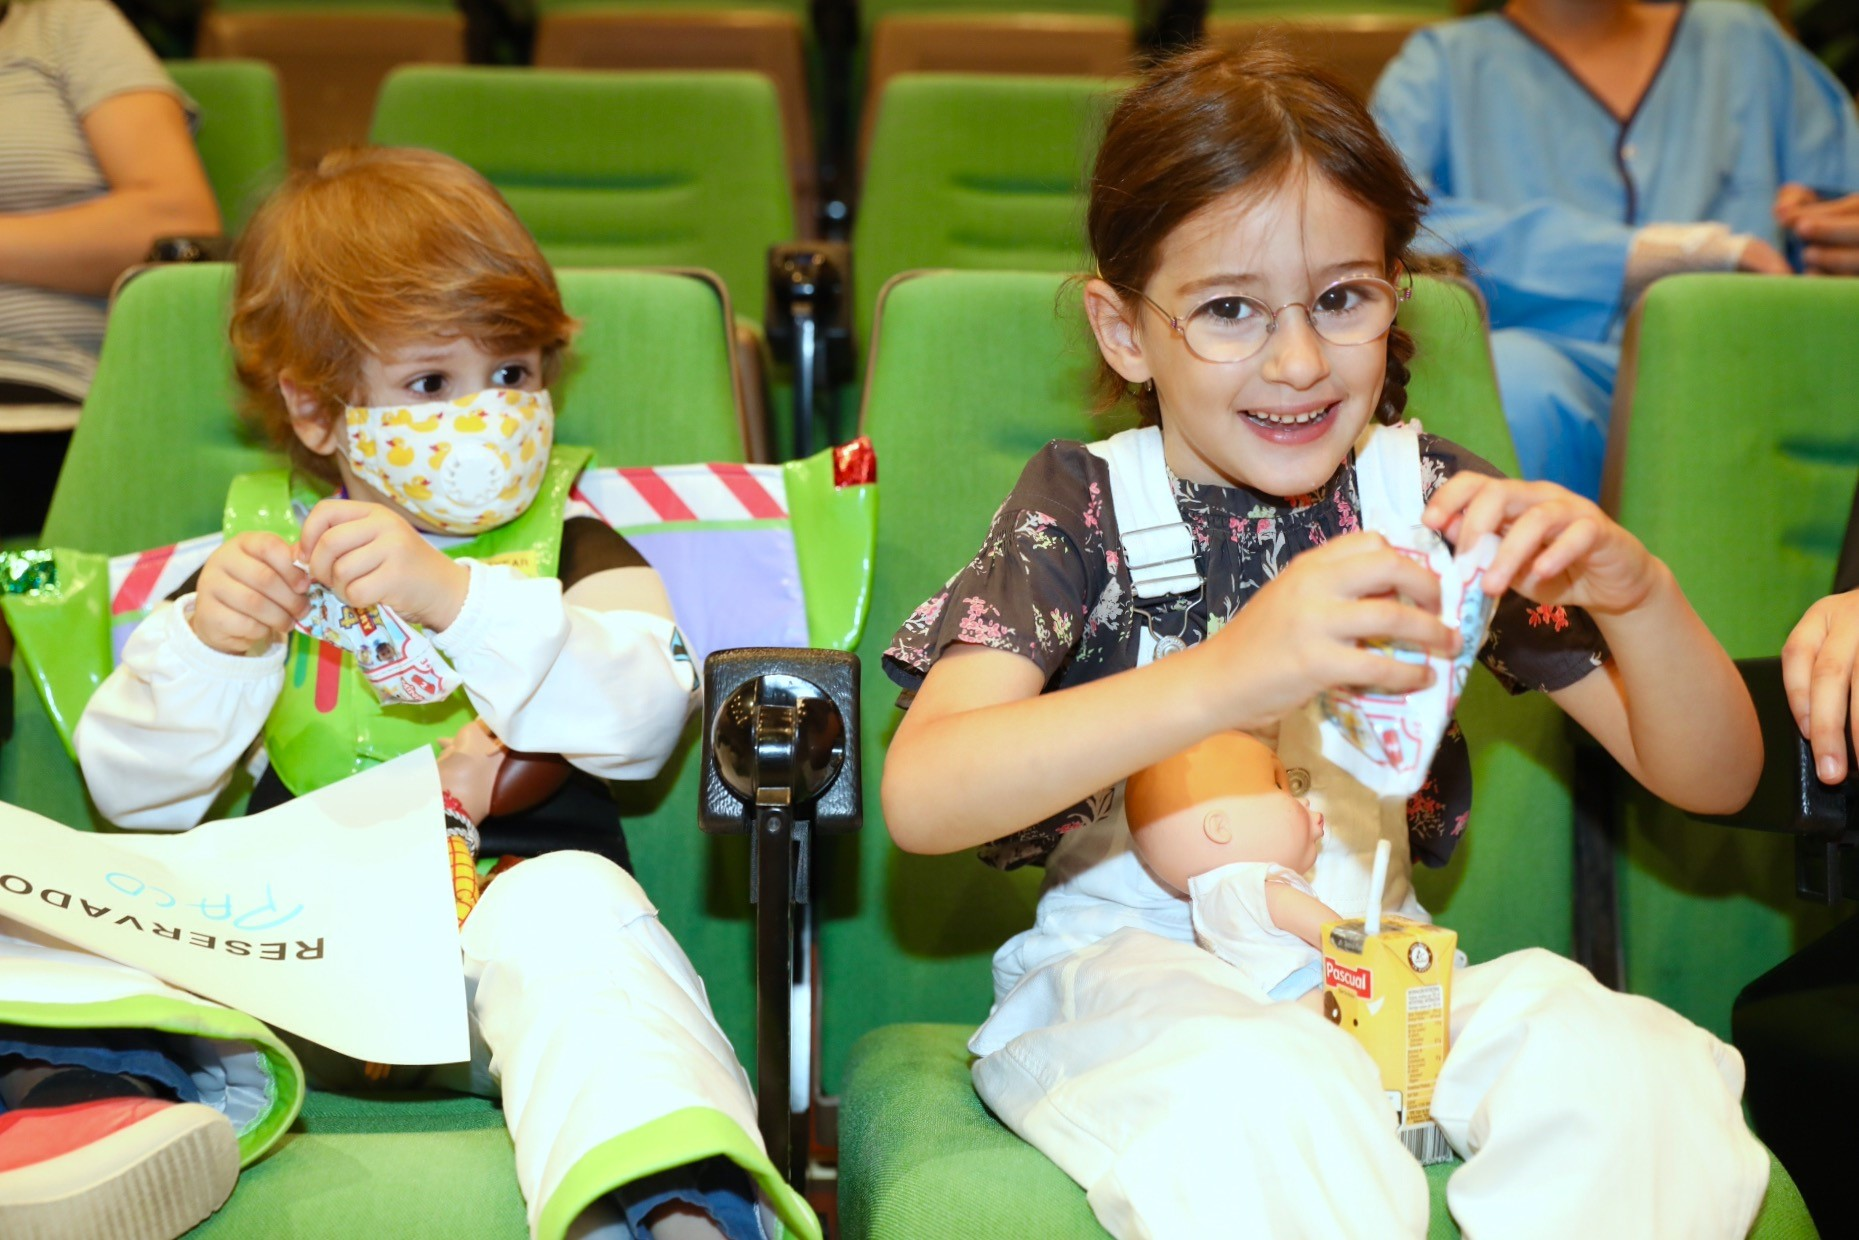 Toy Story Premiere at Children's Hospitals in Madrid and Barcelona